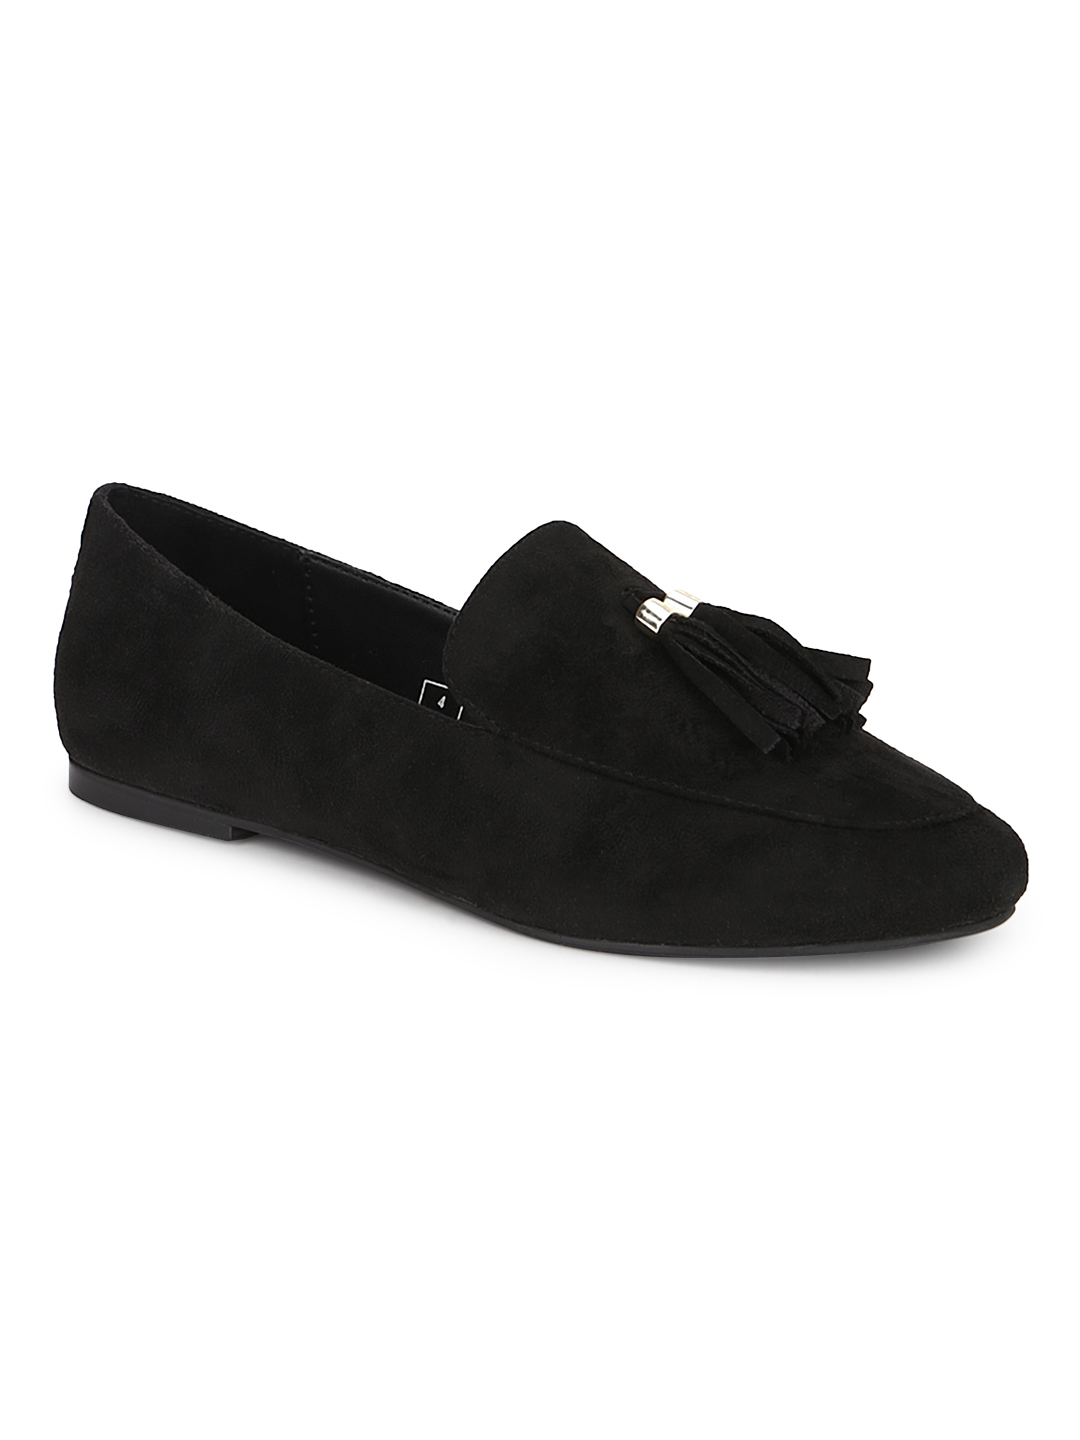 Truffle Collection   Truffle Collection Black Micro Loafer Shoes With Tassle